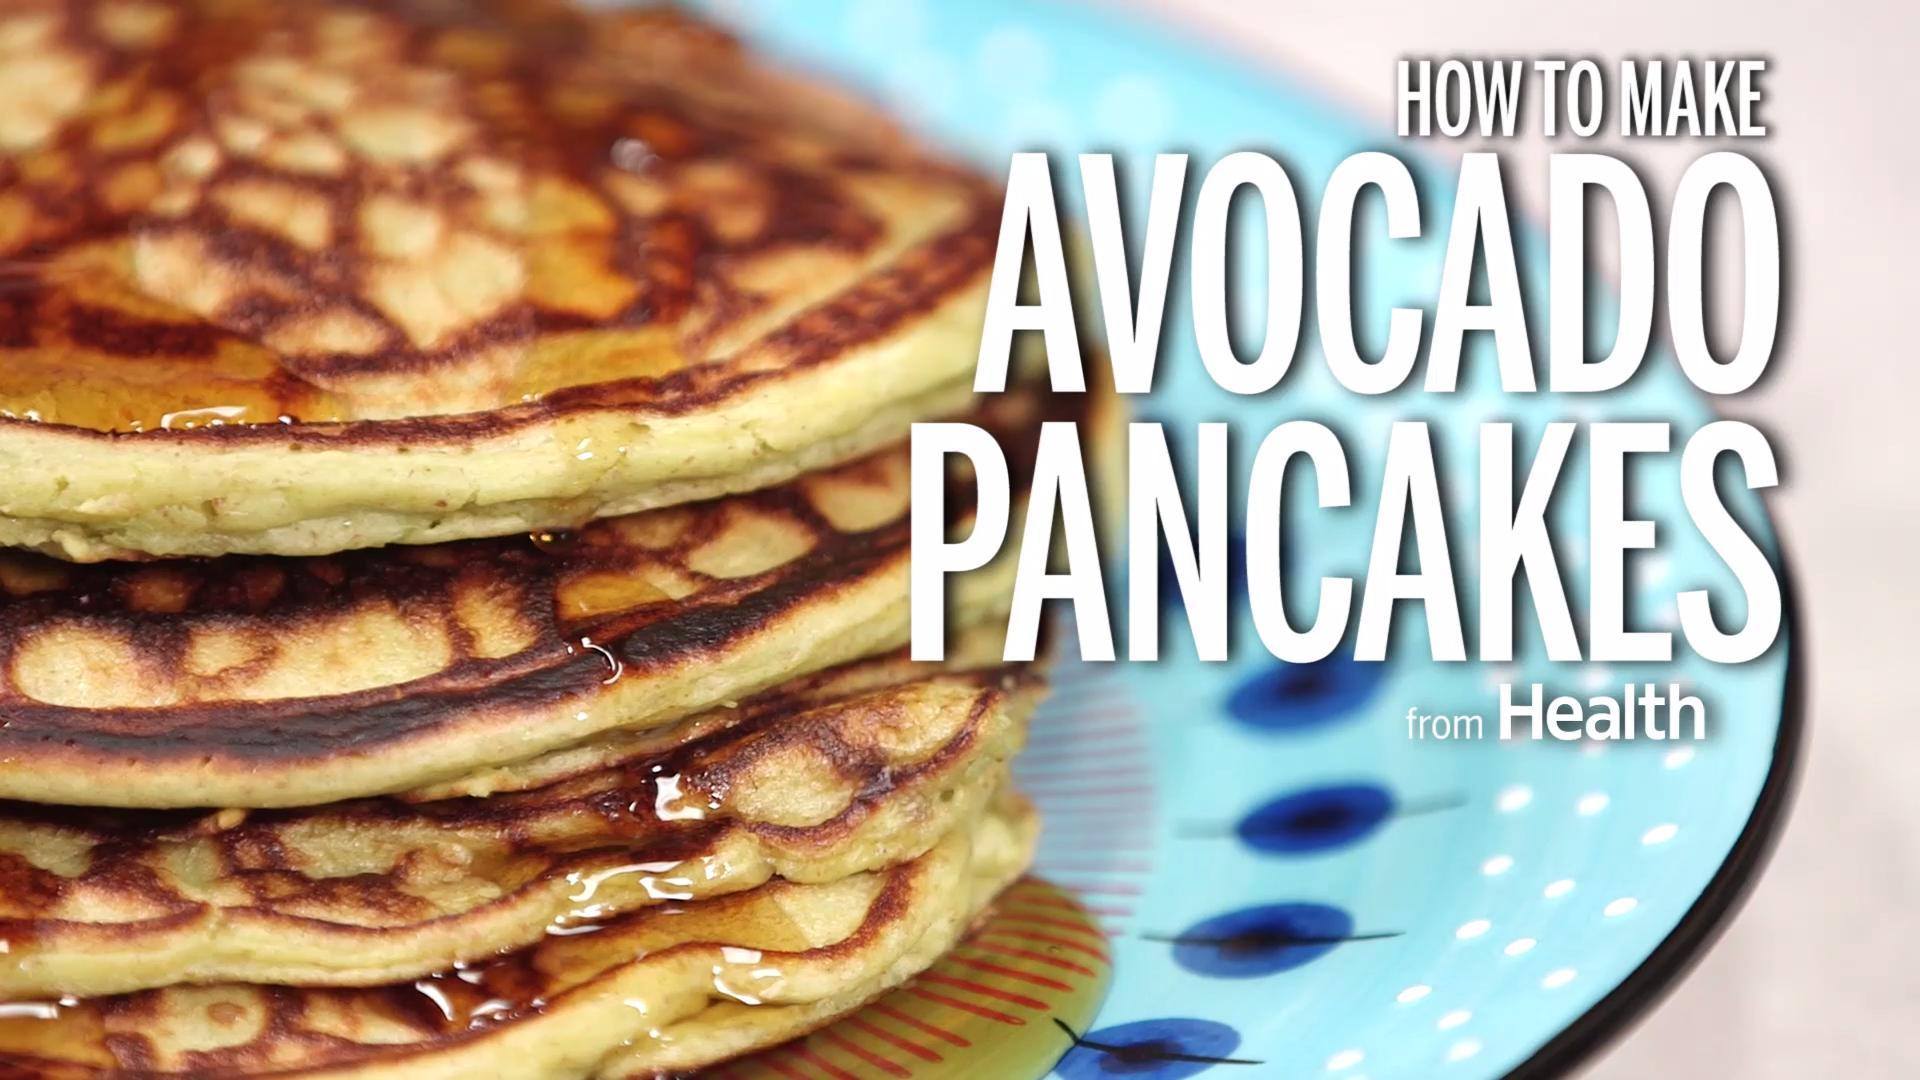 Avocado Pancakes Could Be The Next Avocado Toast | HuffPost Life